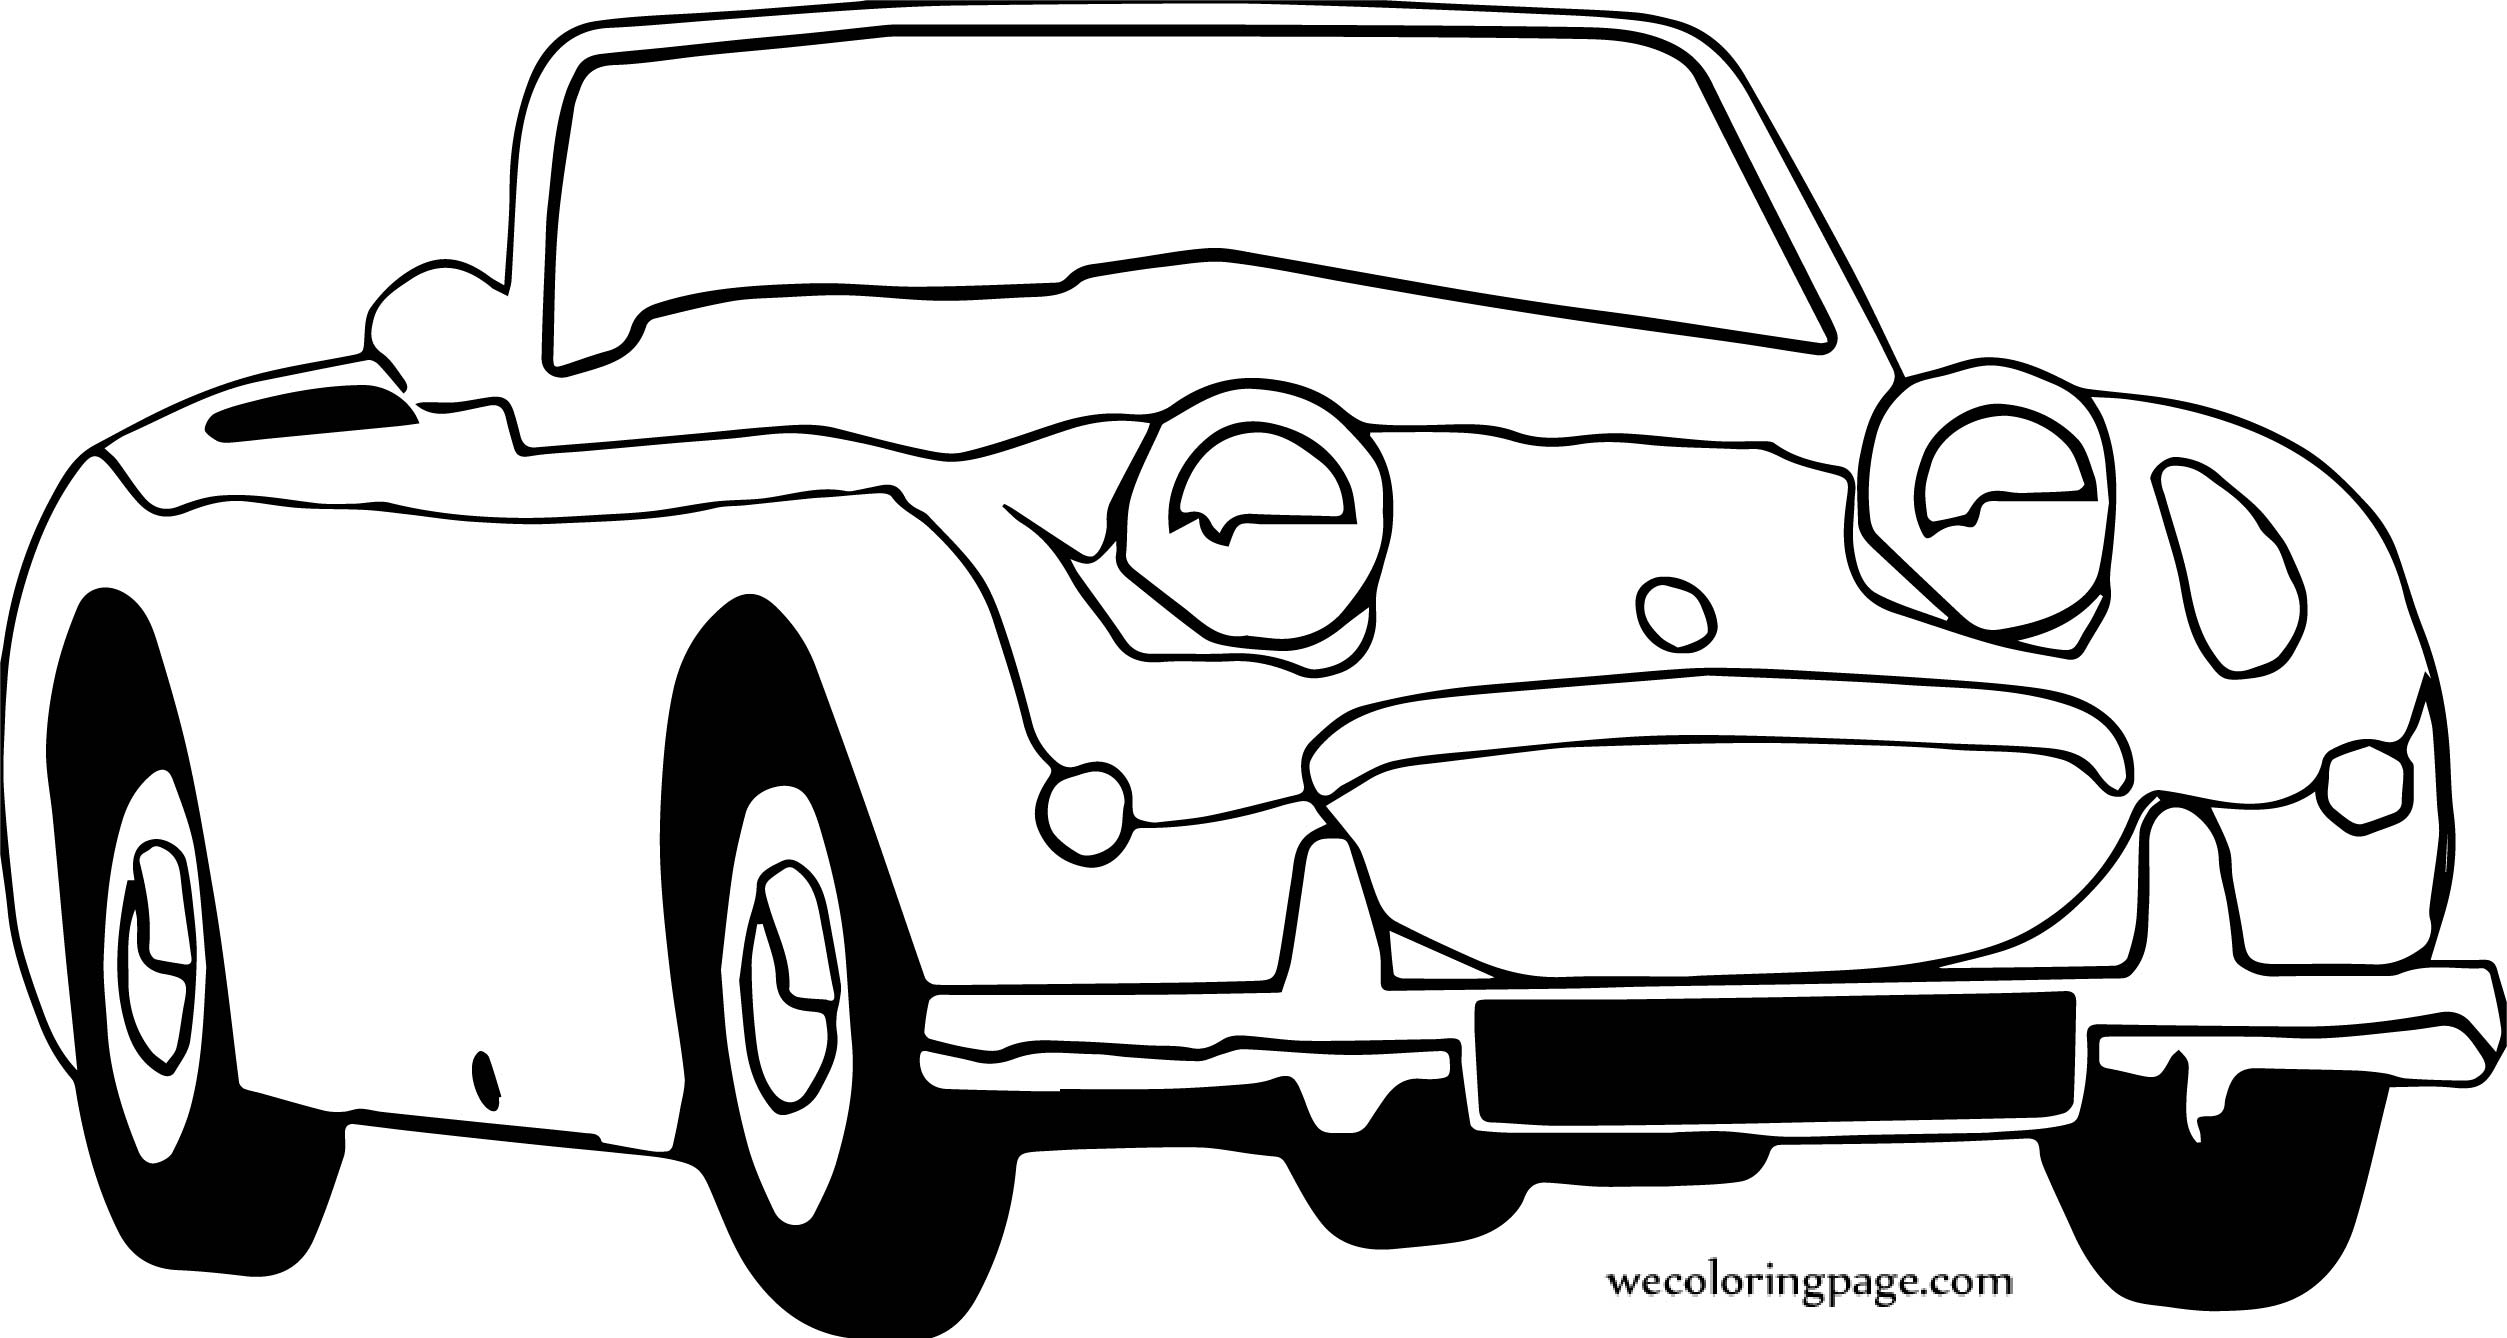 Car Wecoloringpage Coloring Page 132